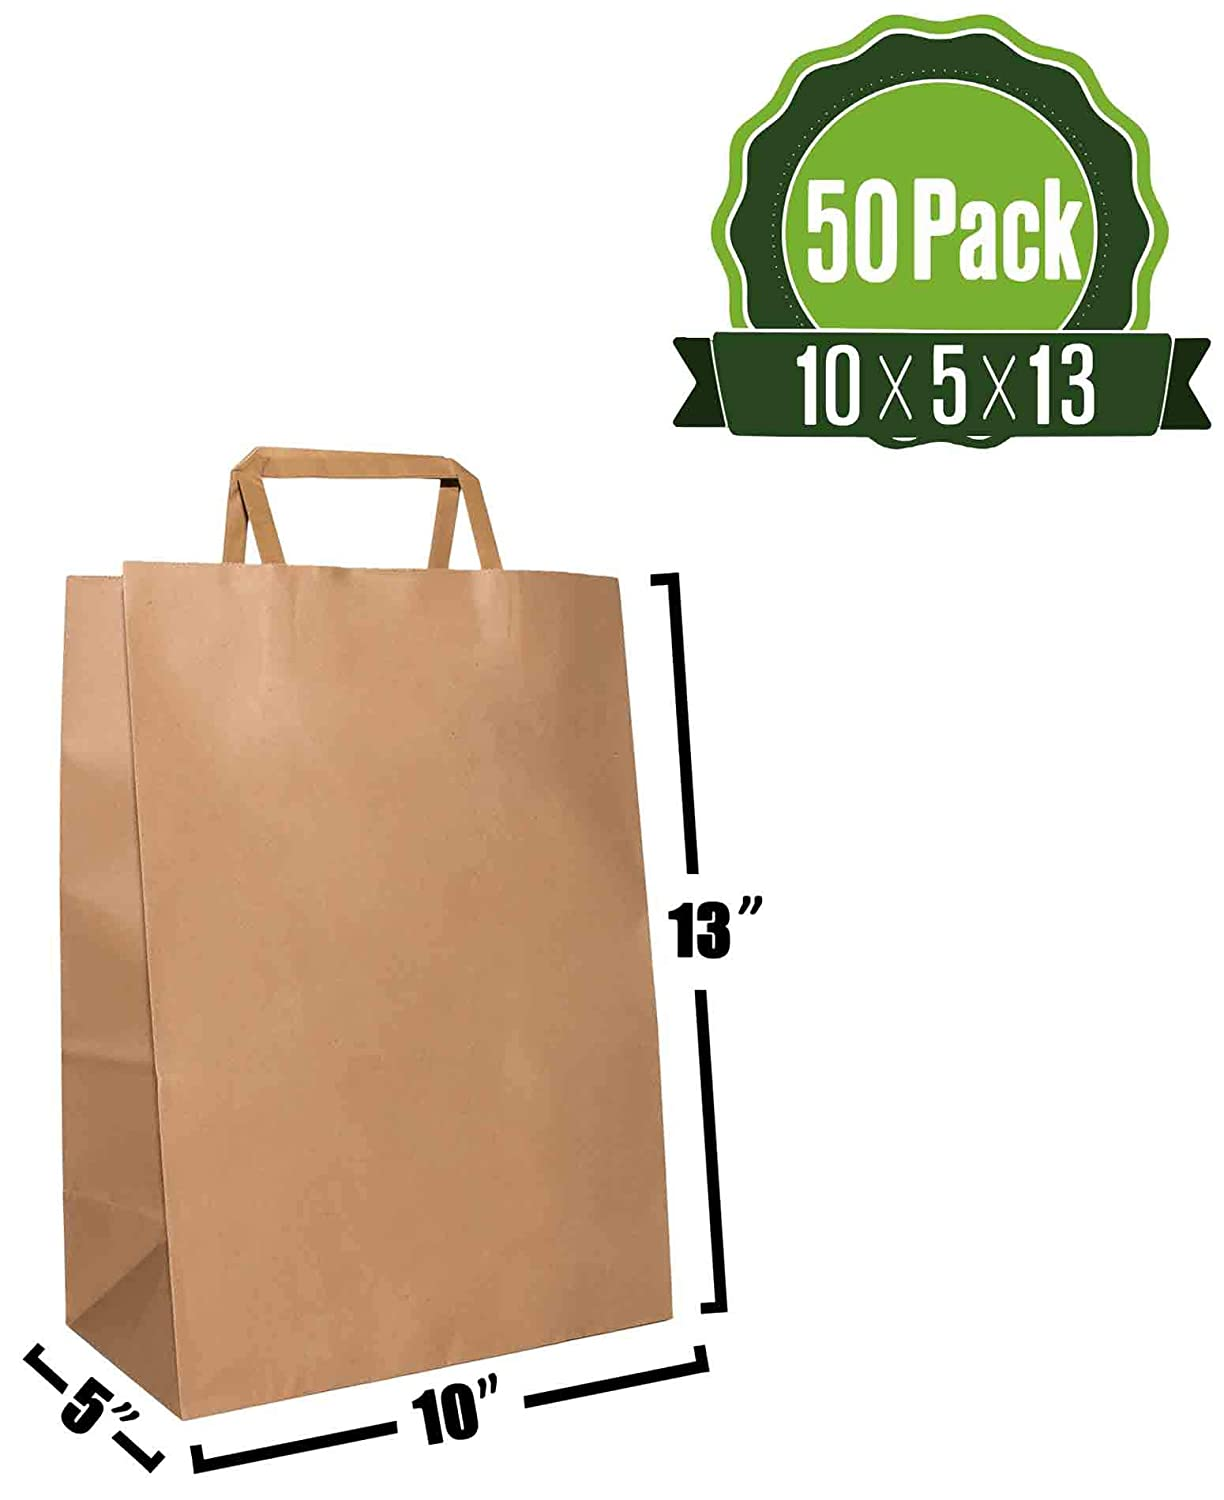 10 X 5 X 13 Brown Kraft Paper Gift Bags Bulk with Flat Handles [50Pc]. Ideal for Shopping, Packaging, Retail, Party, Craft, Gifts, Wedding, Recycled, ...